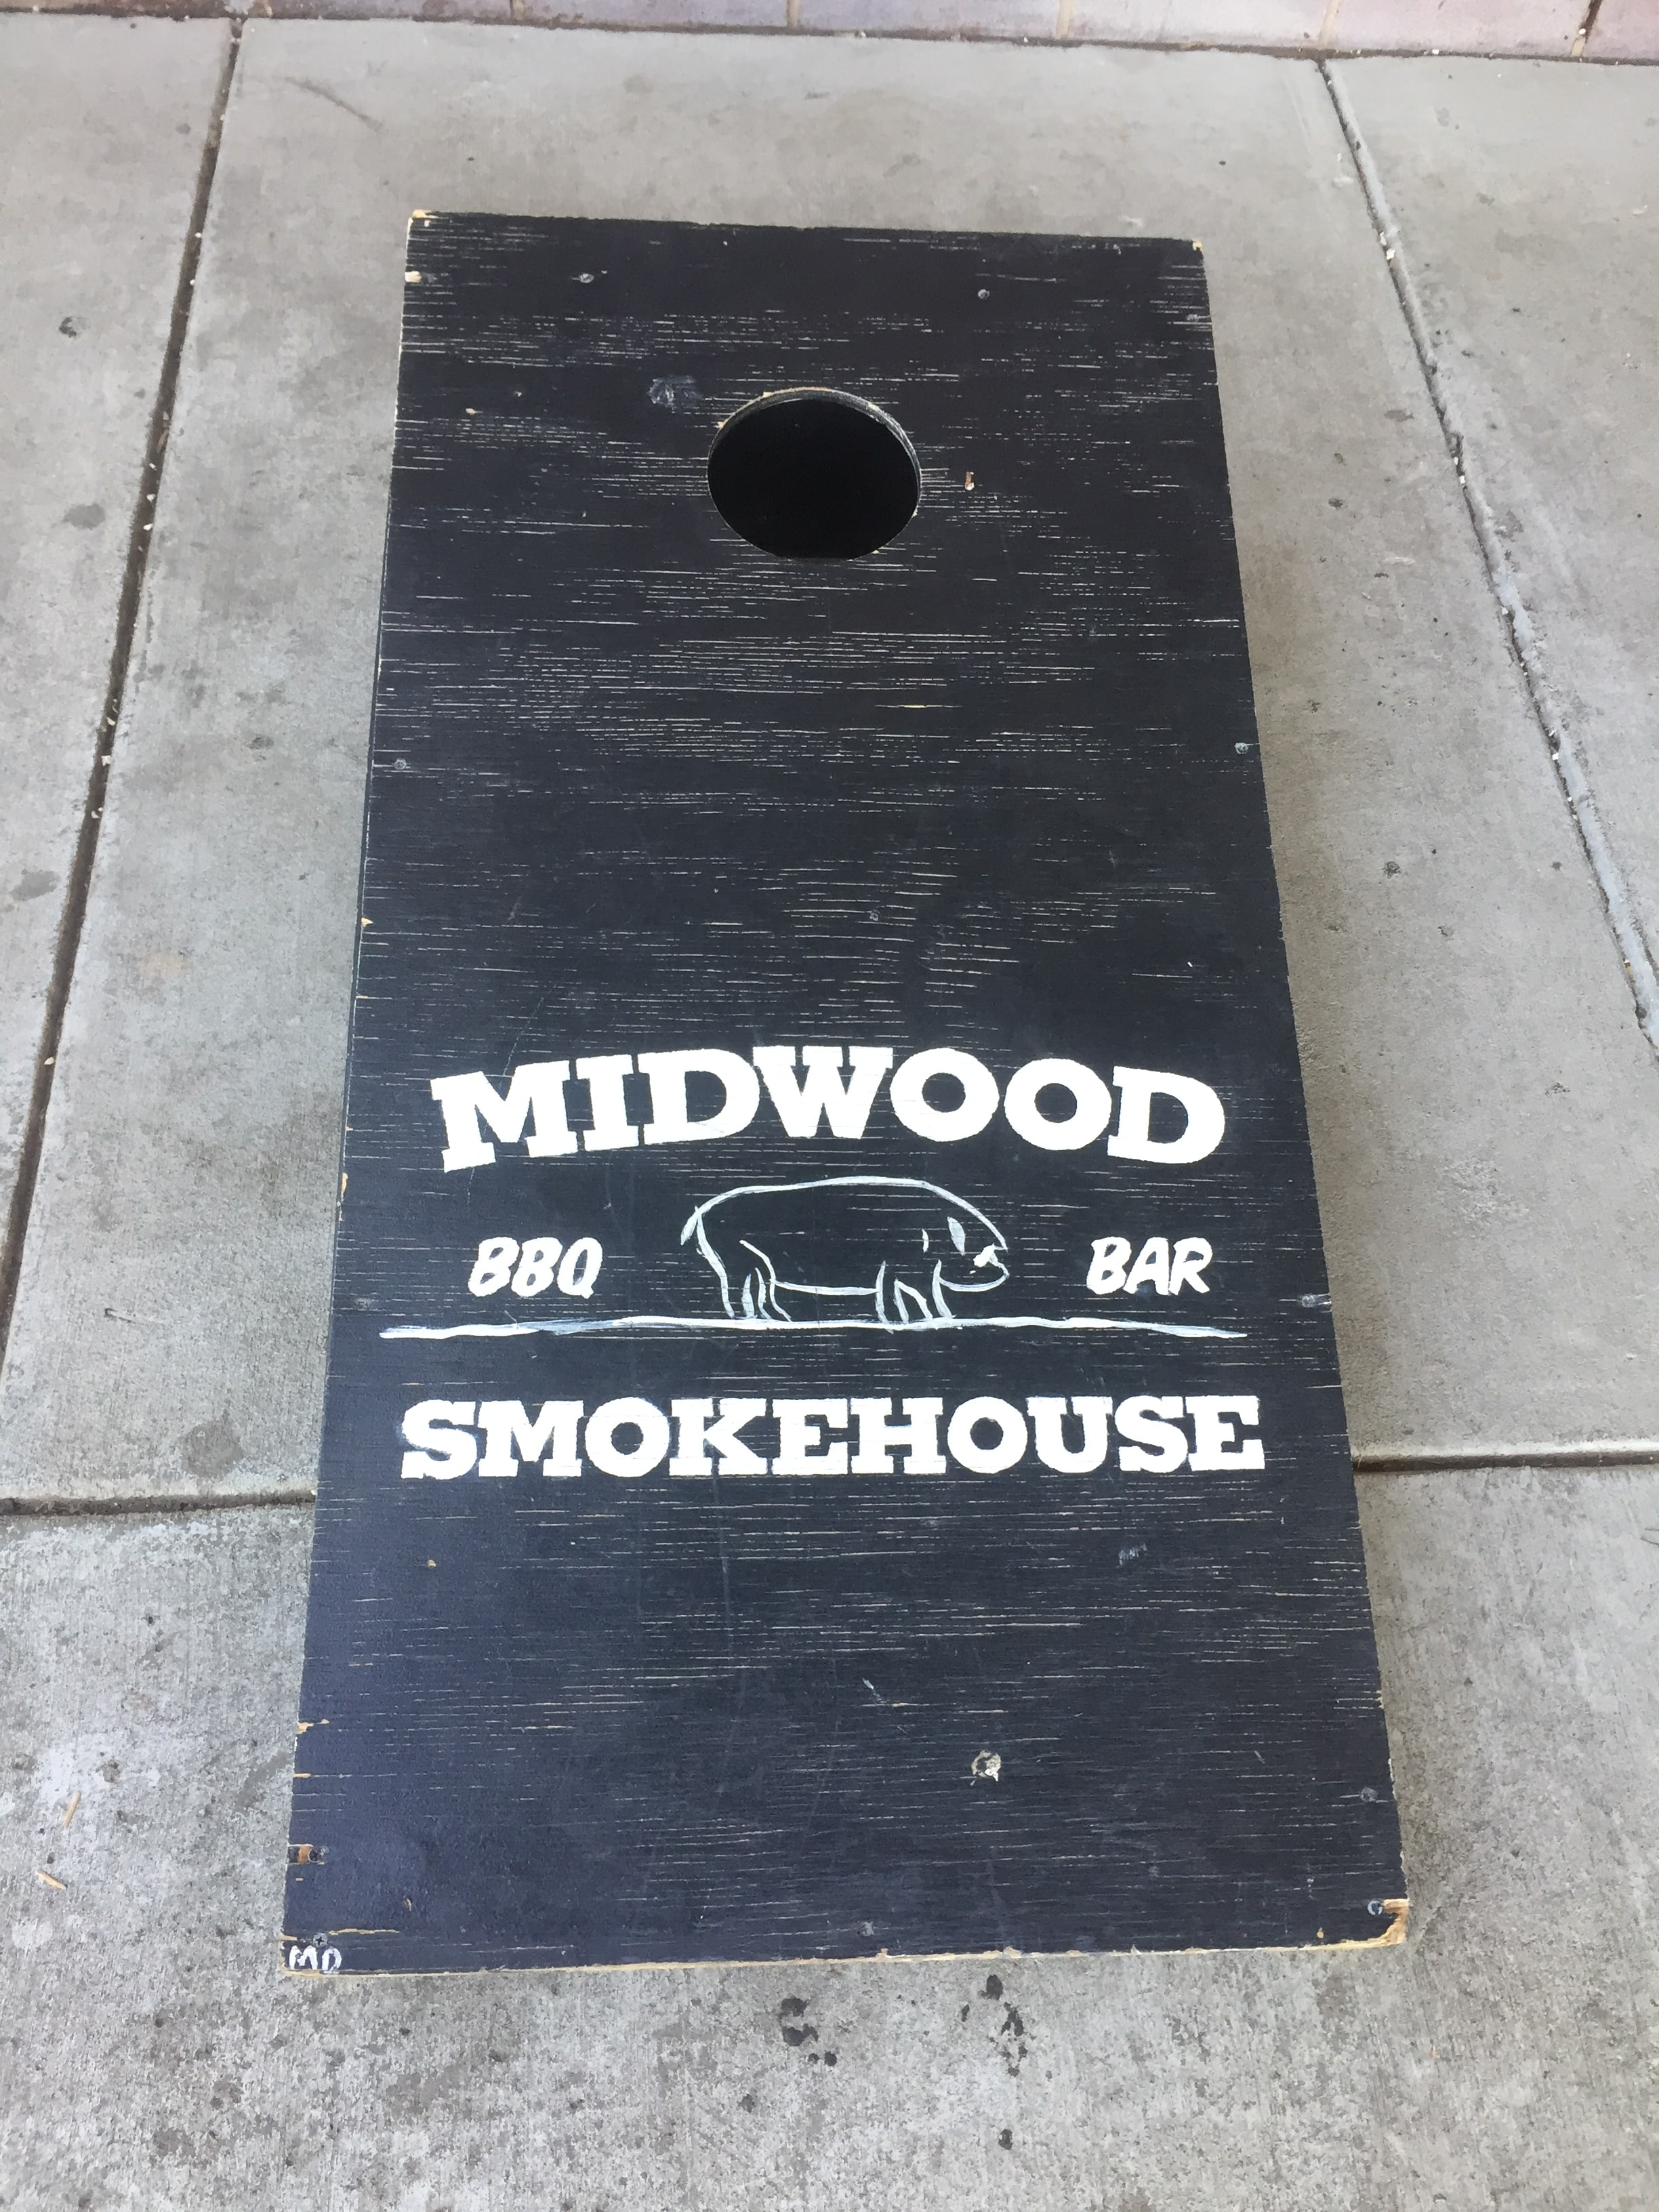 Charlotte Midwood Smokehouse pre-lunch workout.